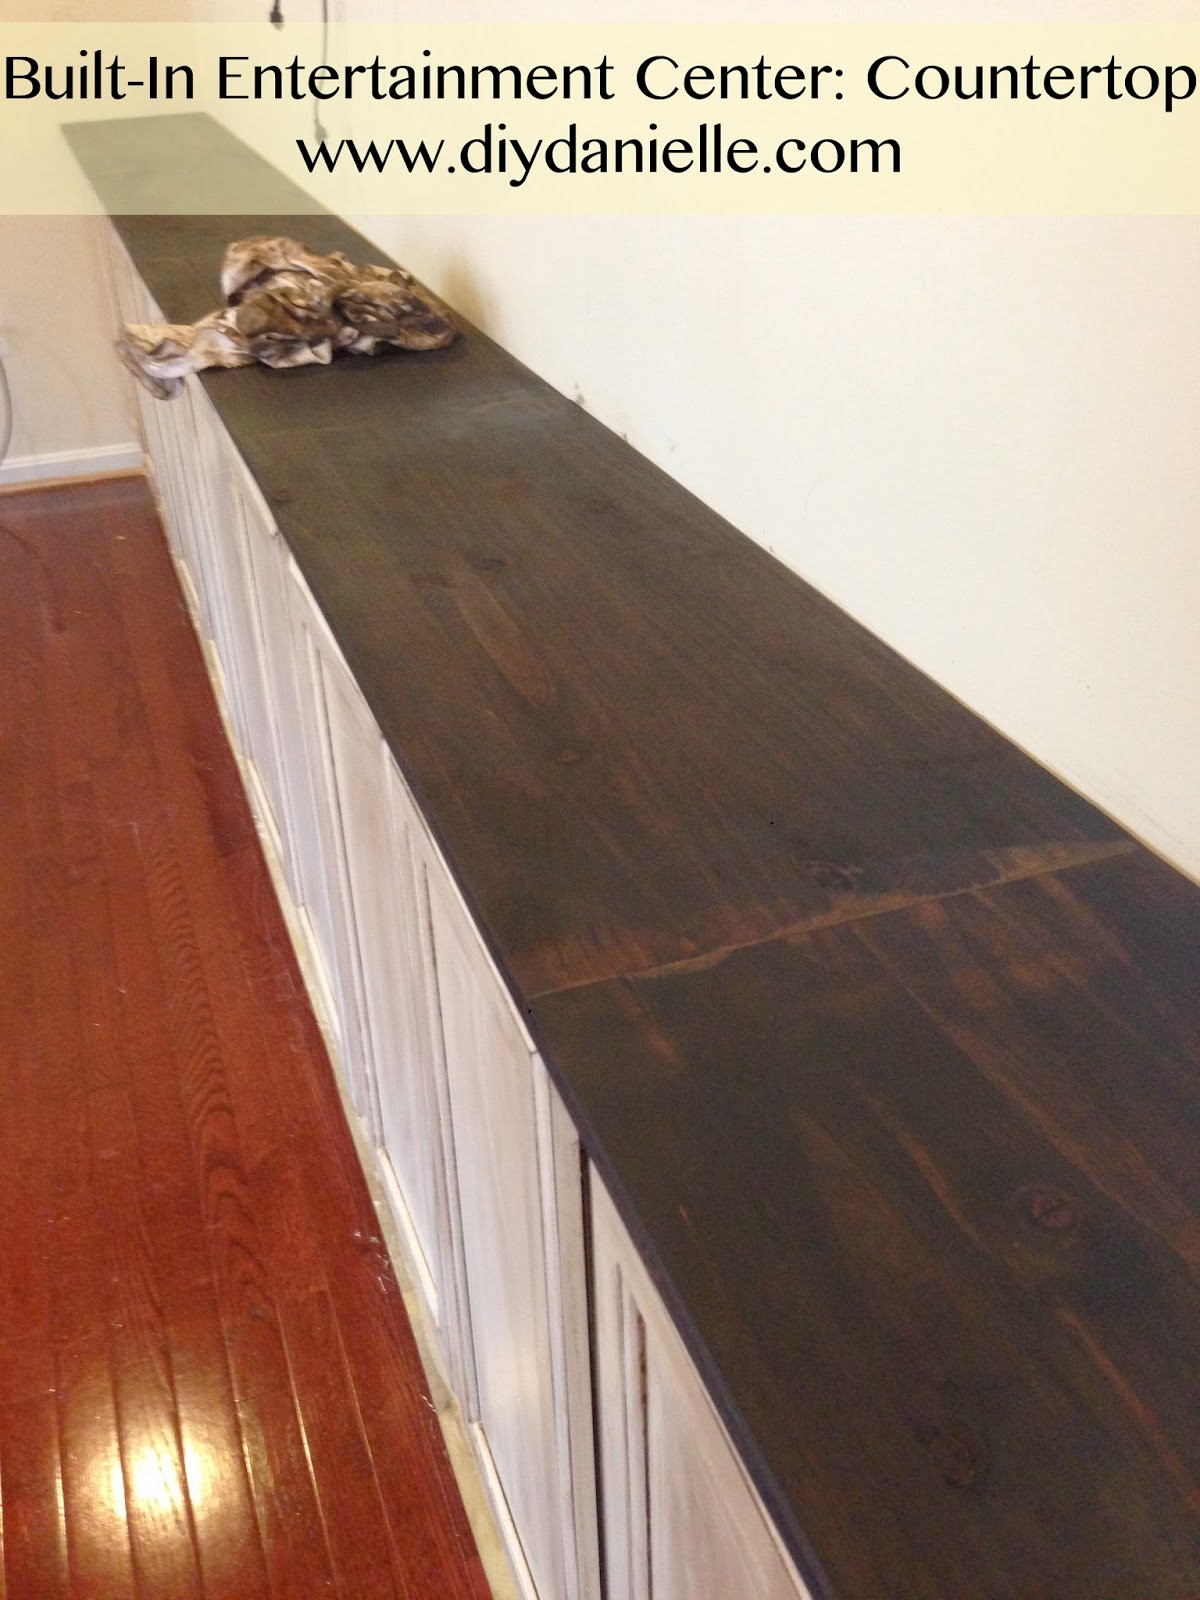 Staining a wood countertop